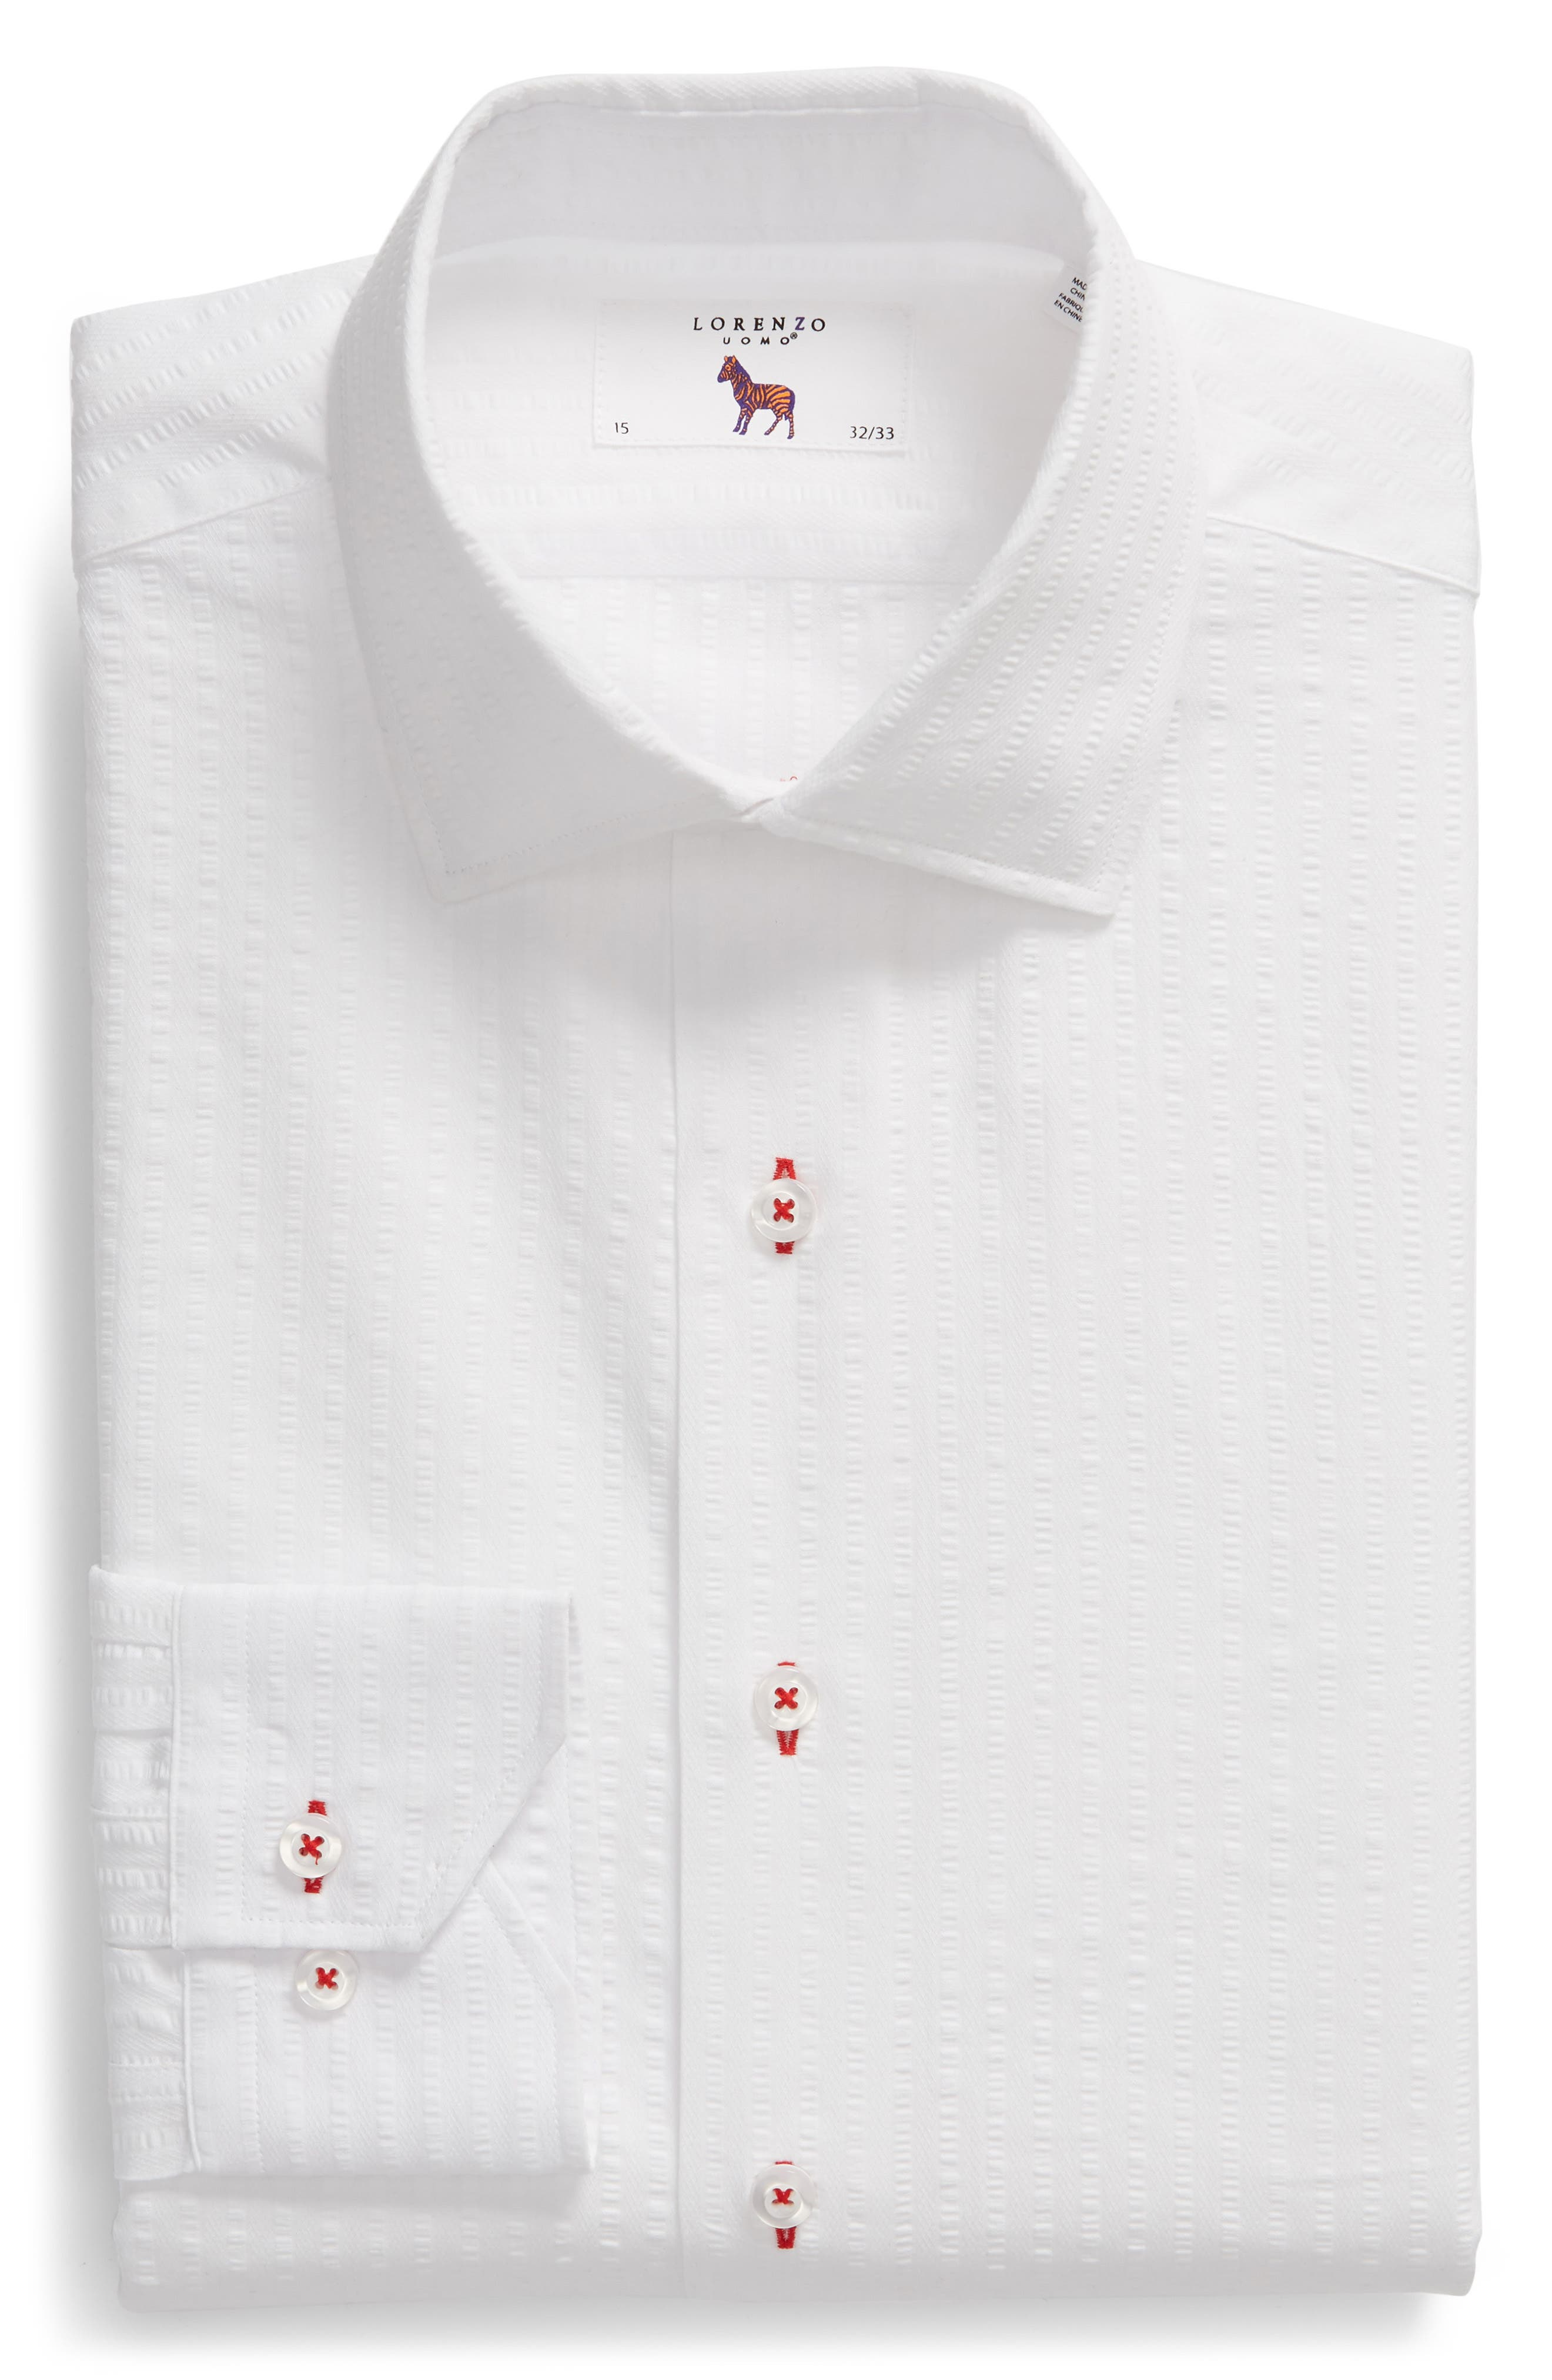 Trim Fit Seersucker Dress Shirt,                             Alternate thumbnail 6, color,                             White